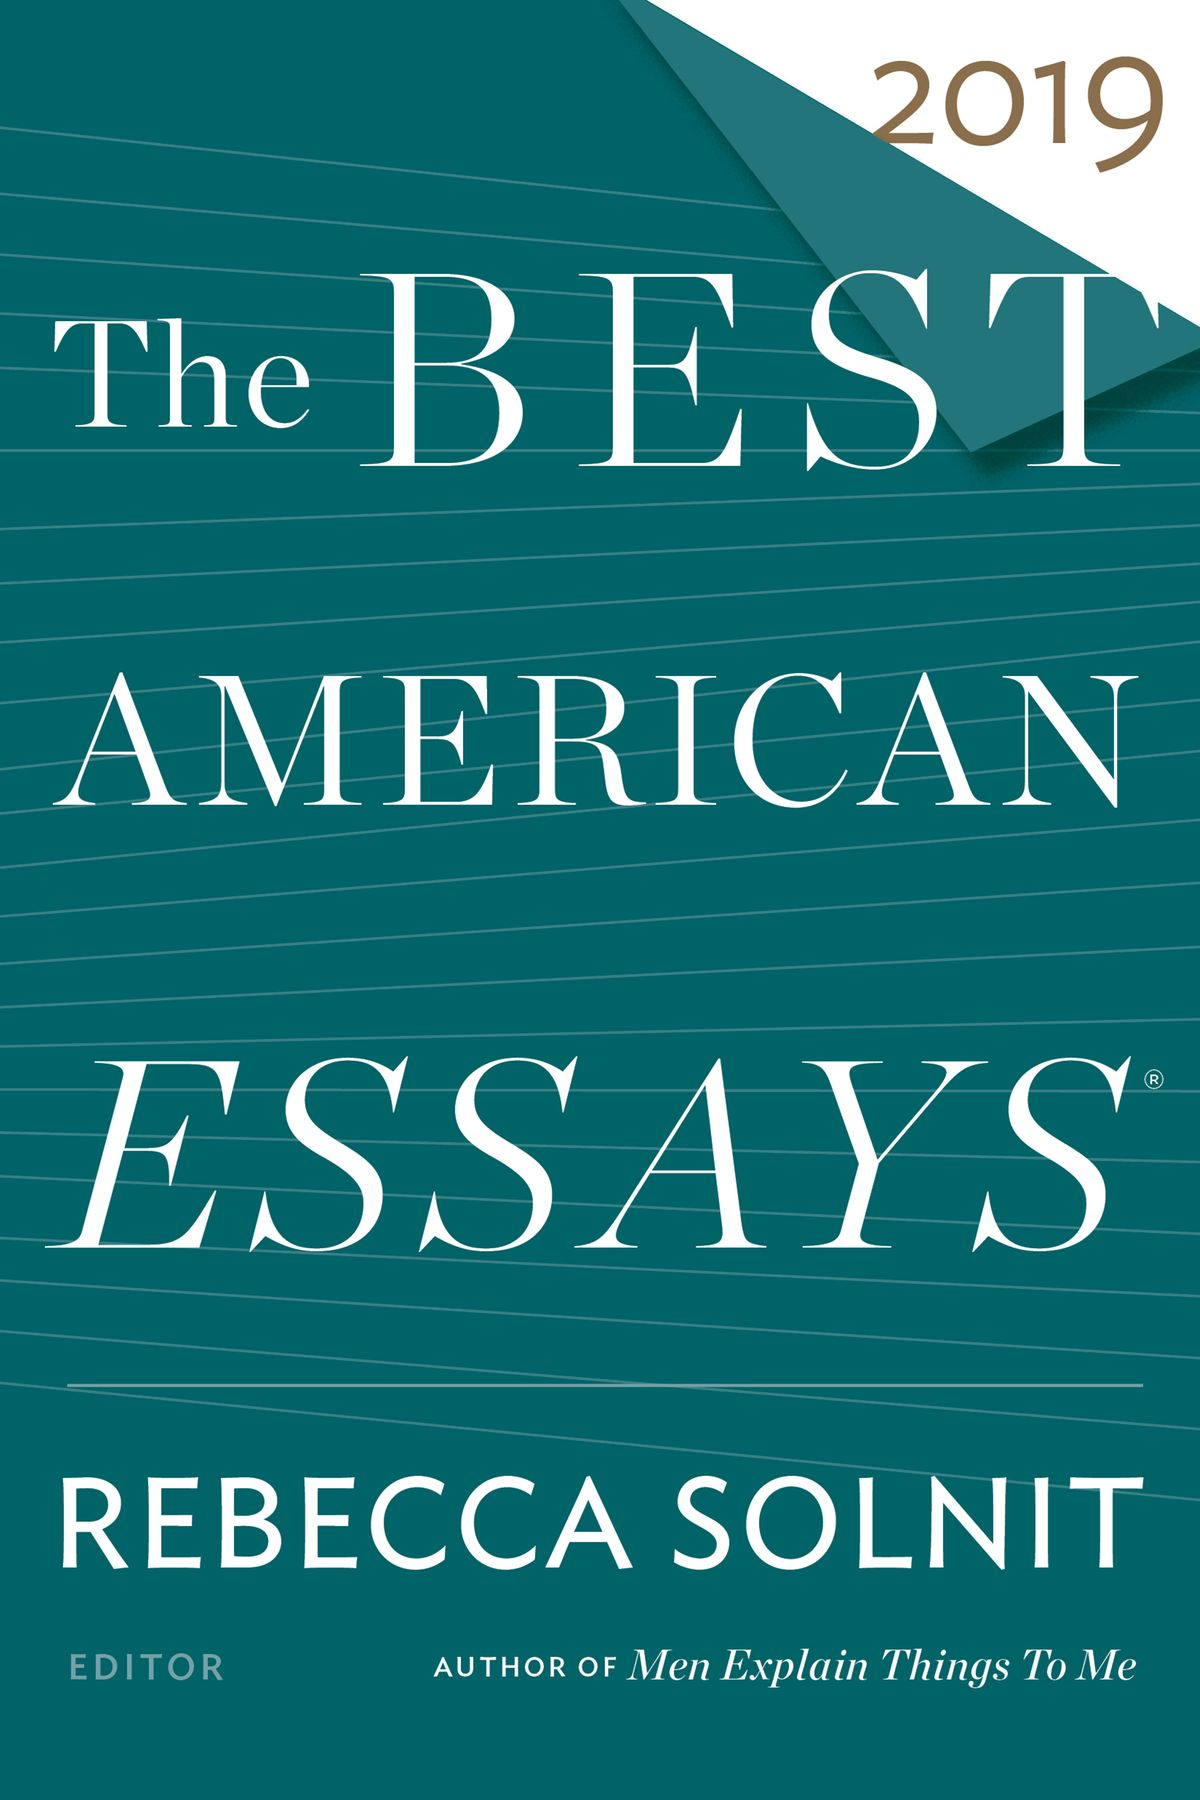 007 The Best American Essays Essay Wonderful 2013 Pdf Download Of Century Sparknotes 2017 Full